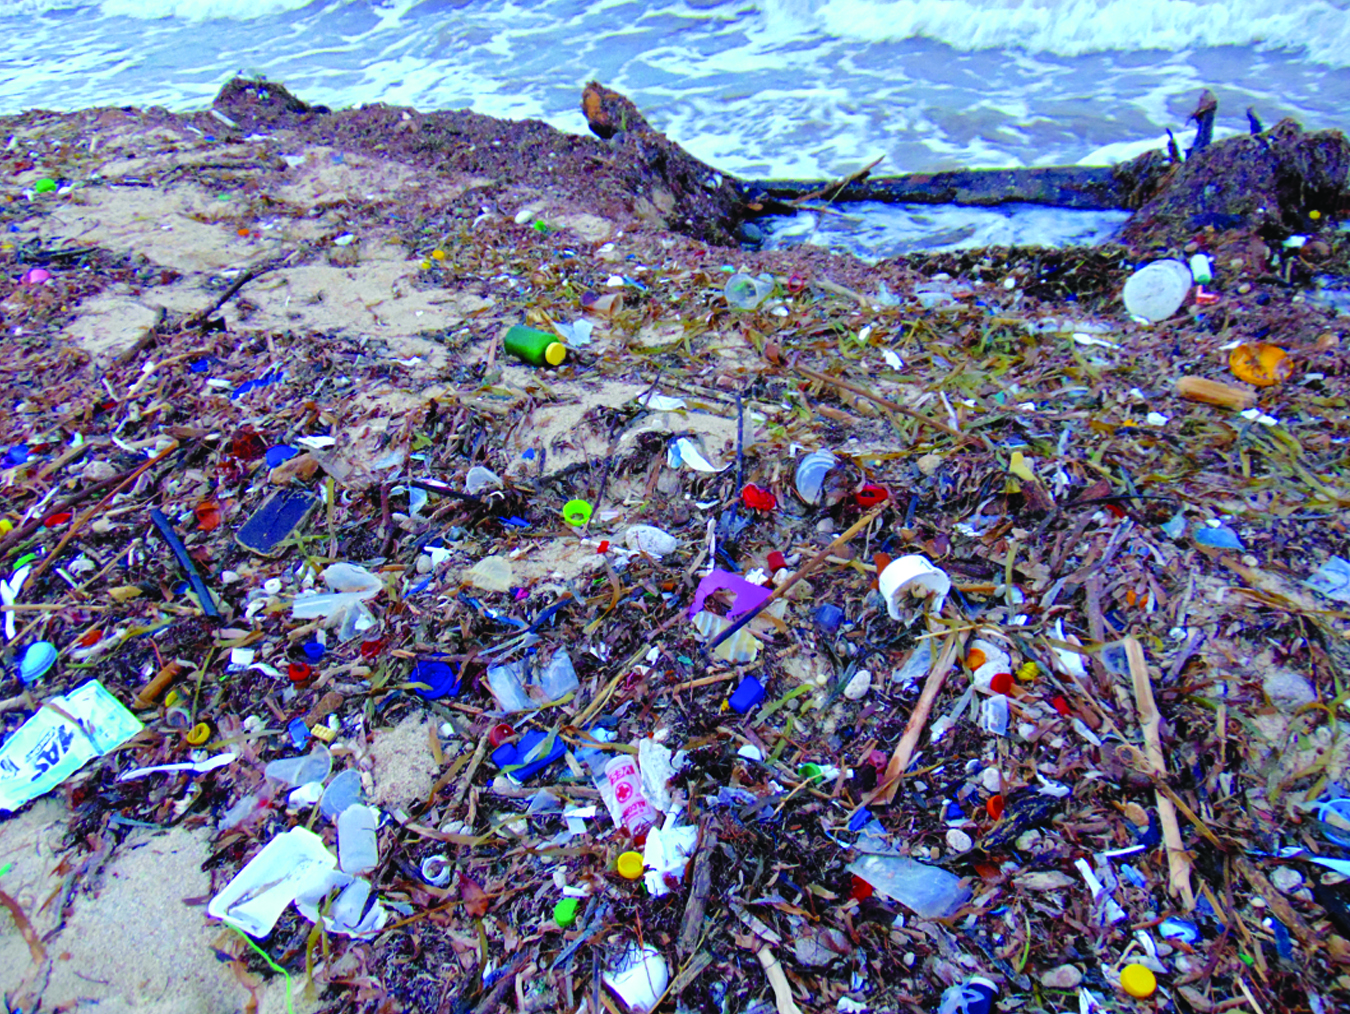 Plastics washing up along the shoreline, southern Belize. Photo by Amy Moran-Thomas.